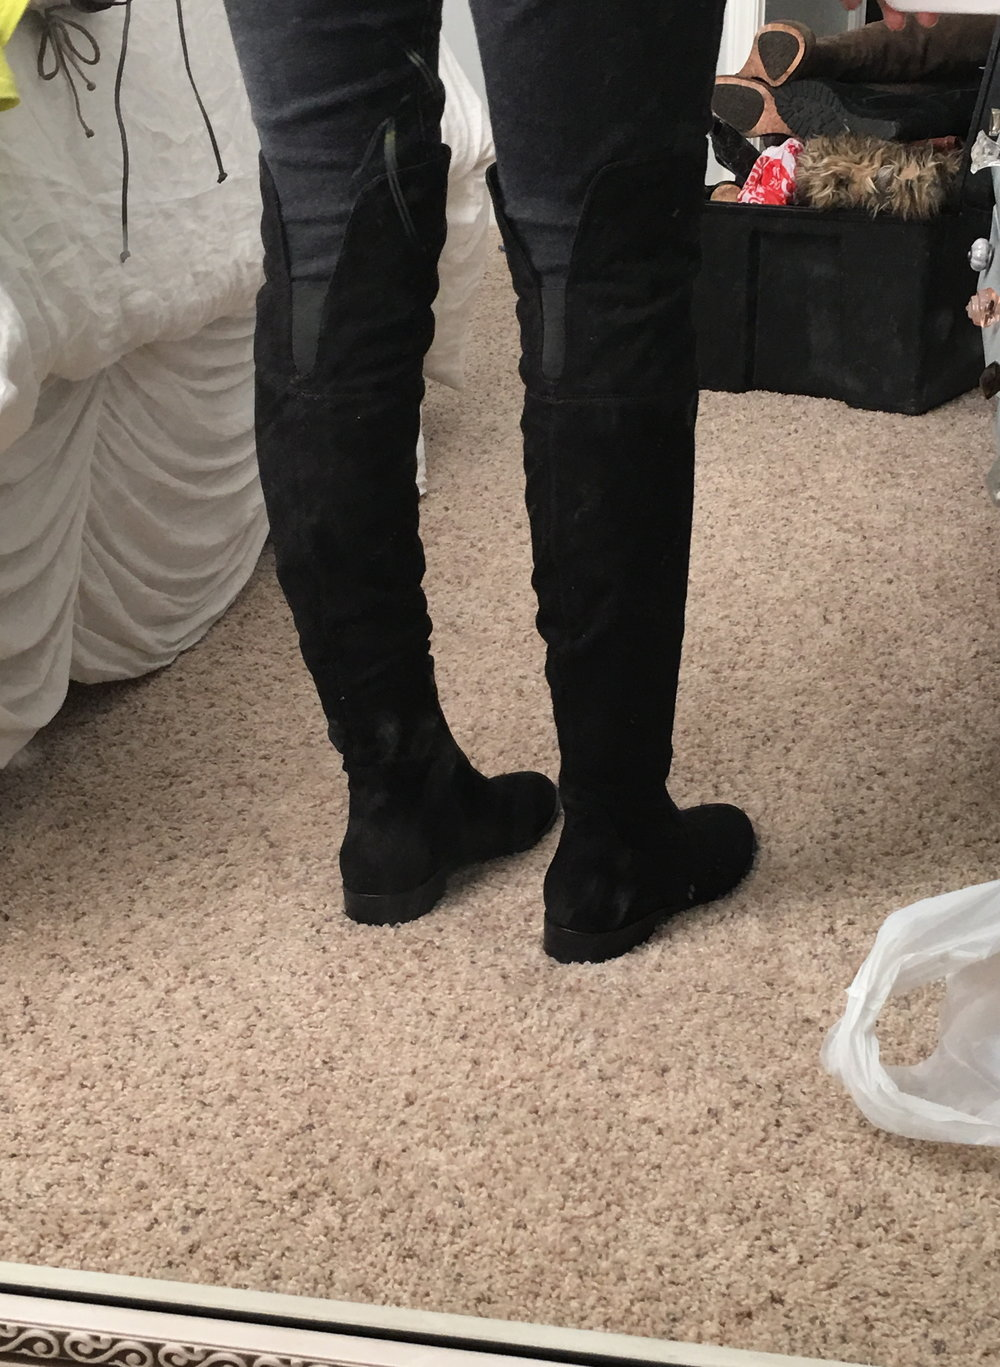 b4a14ea4c8d I ordered them because of the price but didn t expect to like them as much  as I did. I think they actually mimic the SW boots a ...